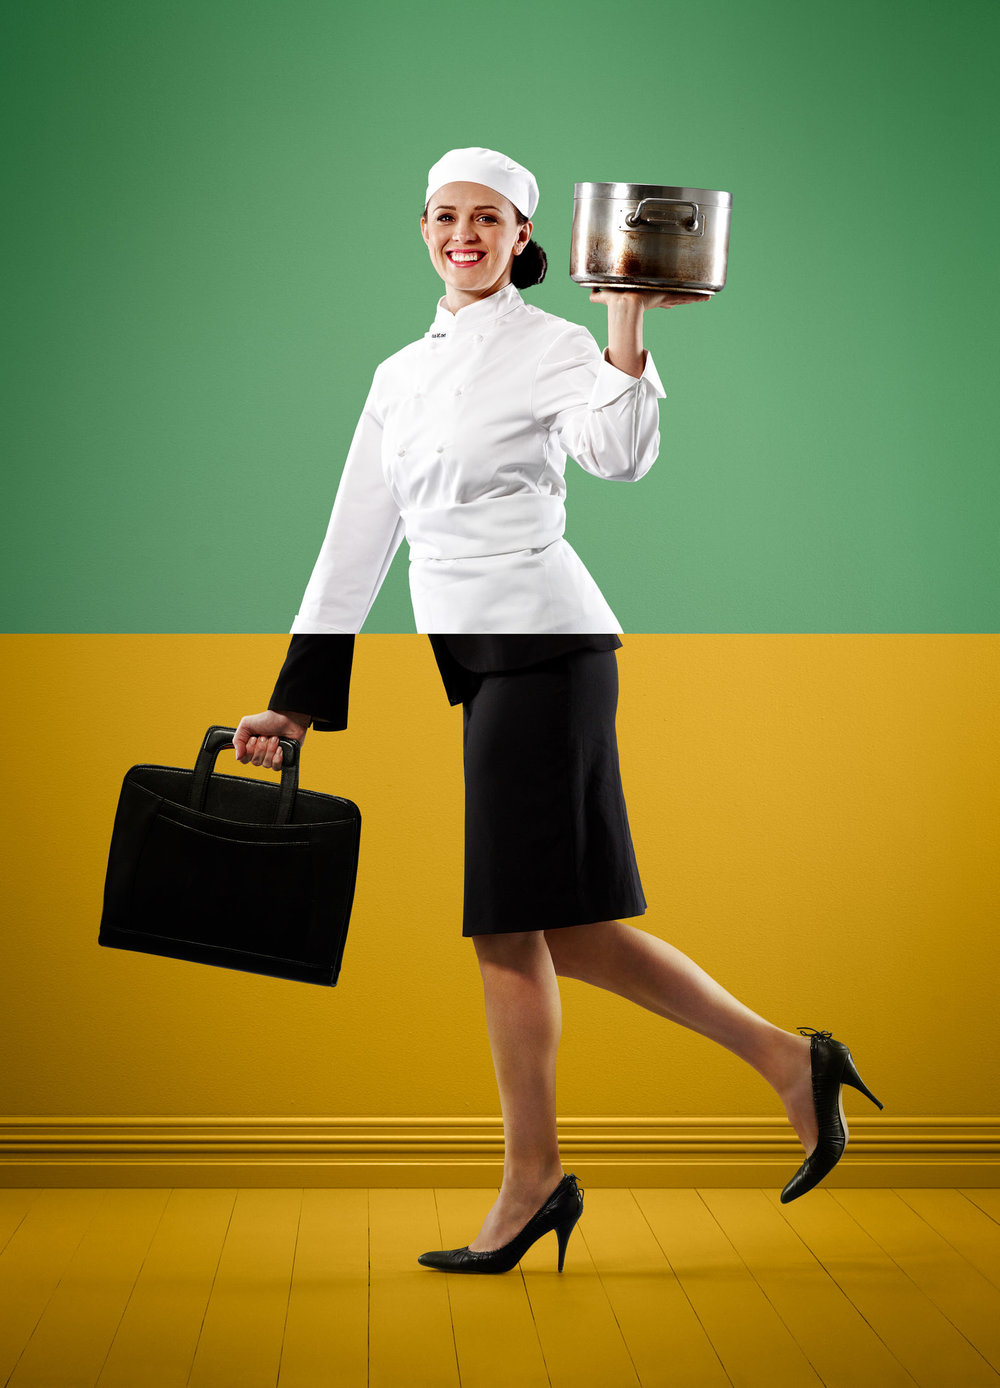 8_chefBusinessWoman_CV.jpg